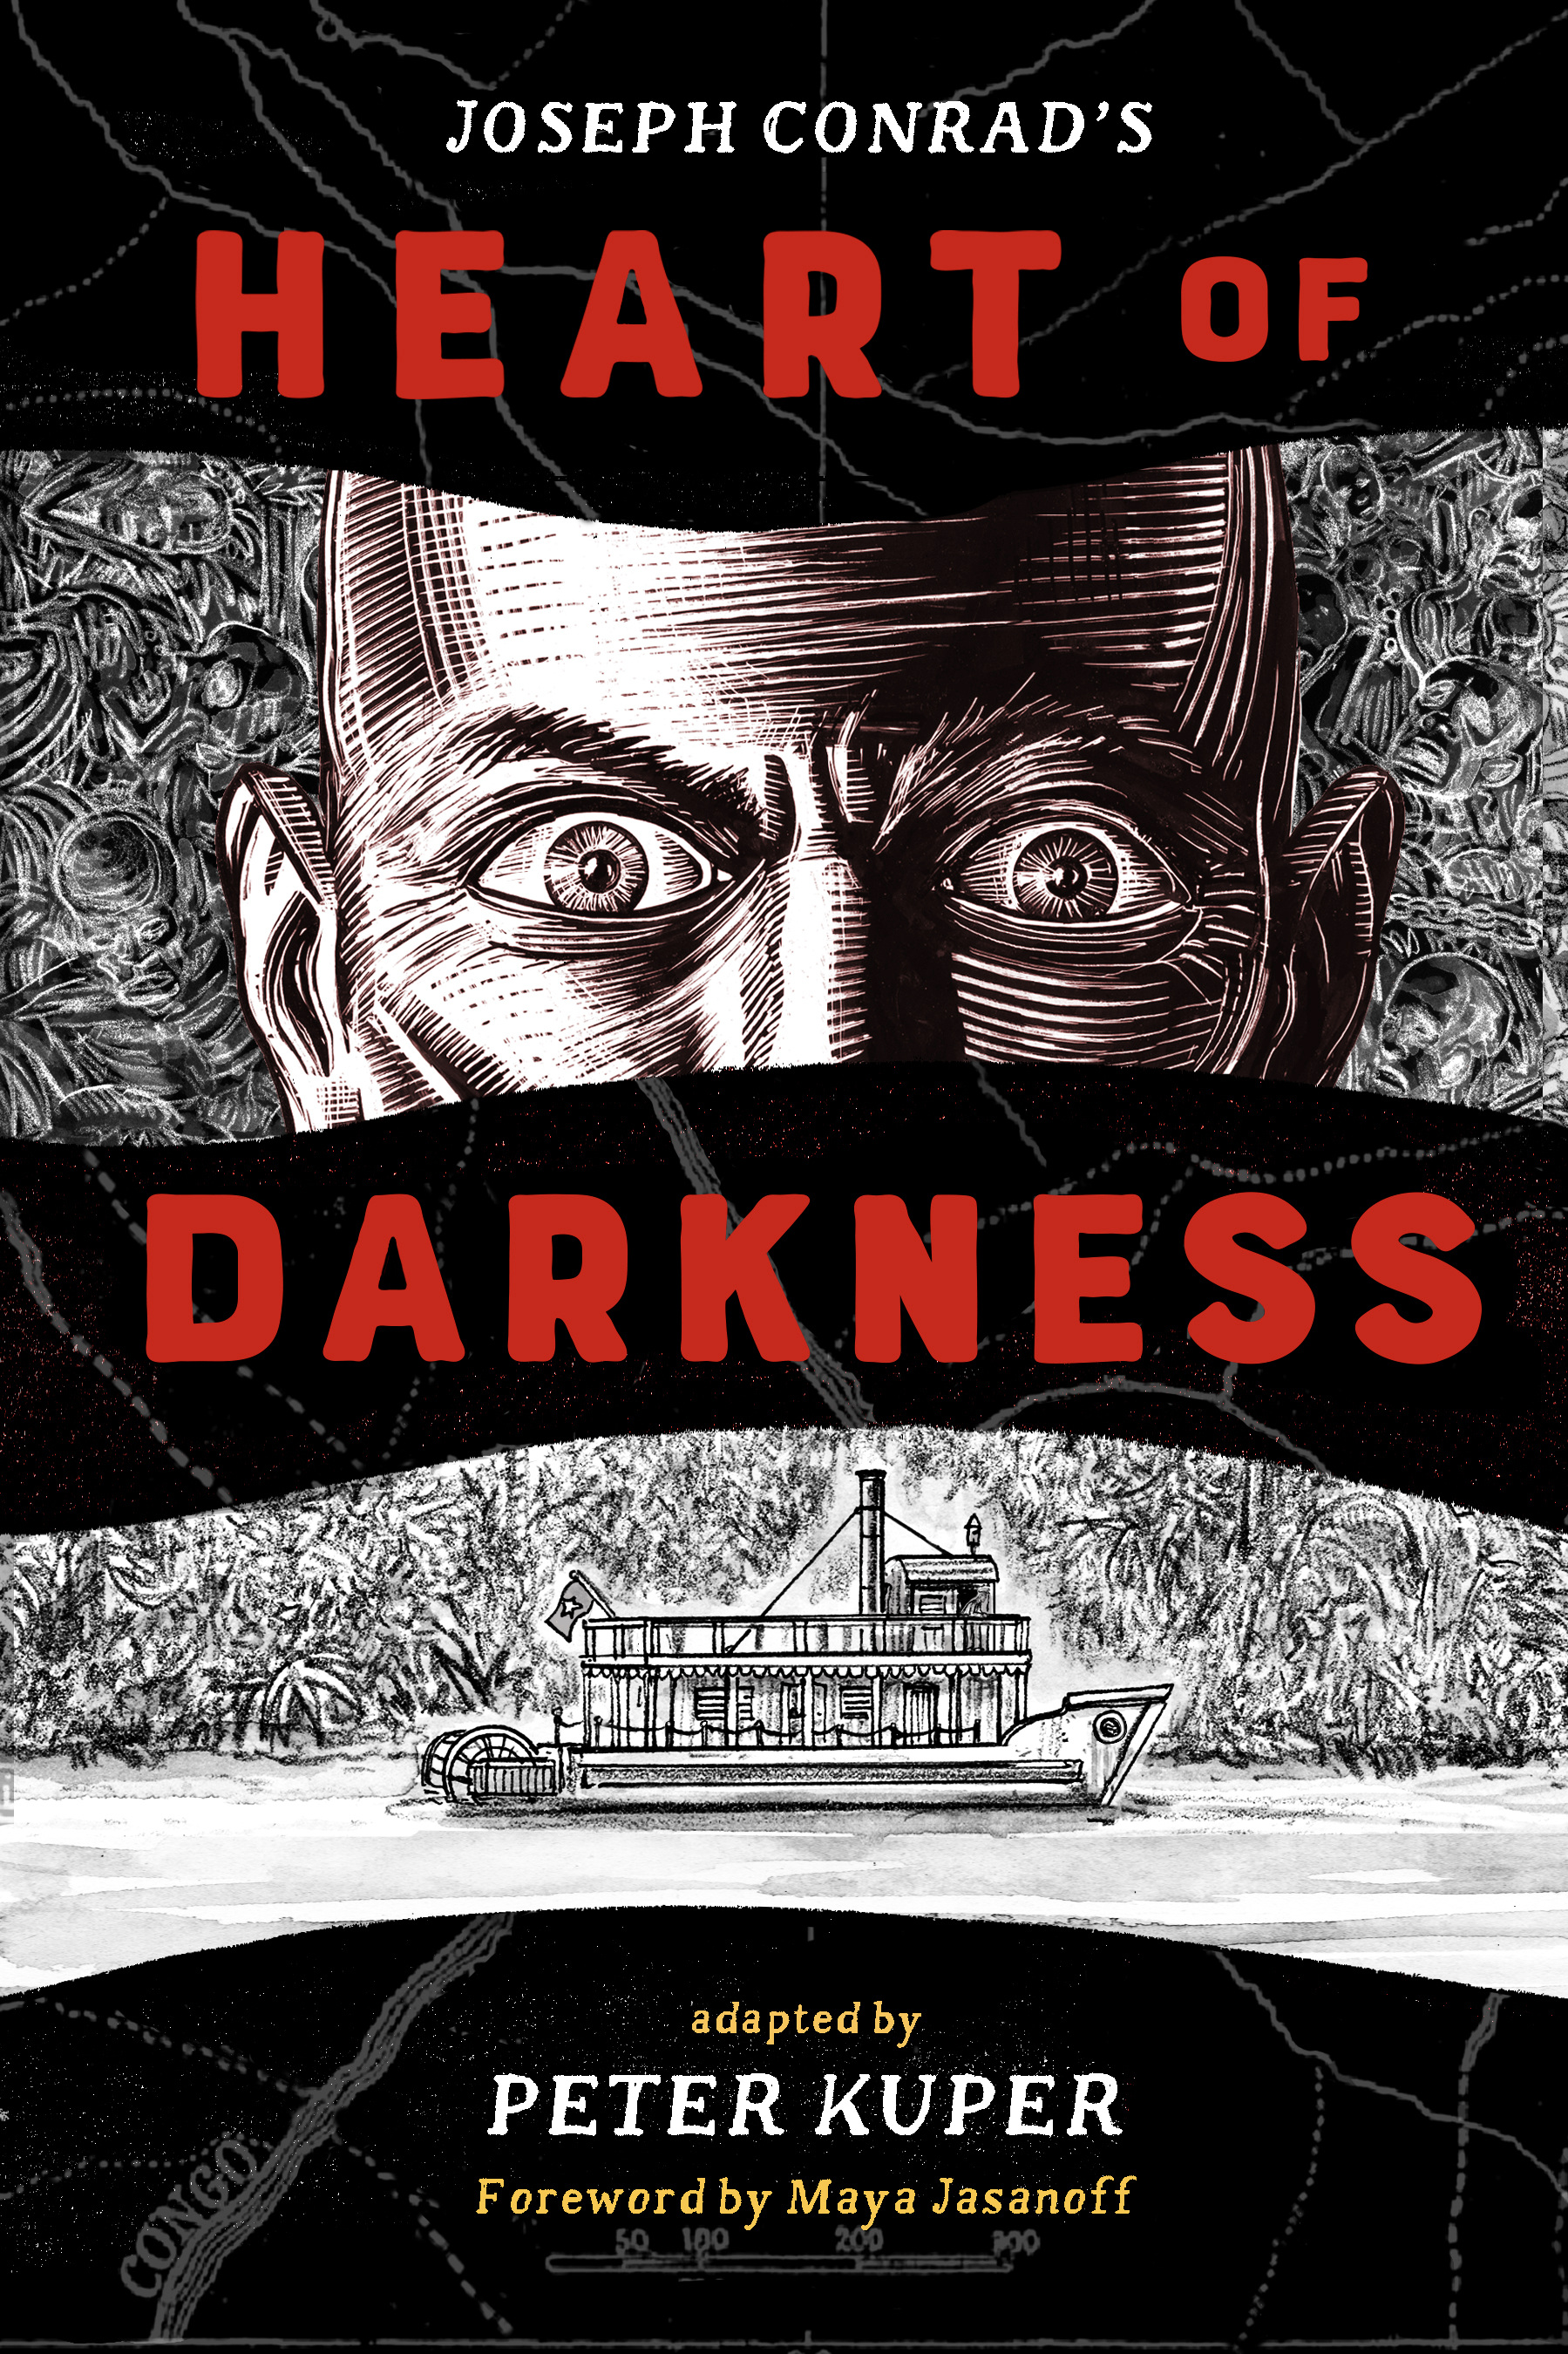 Heart of Darkness - NEW from W. W. NortonComing November 2019ISBN 978-0-393-63564-5Heart of Darkness: has unsettled generations of readers with its haunting portrait of colonialism in Africa. Acclaimed illustrator Peter Kuper delivers a visually immersive and profoundly complex interpretation of this controversial classic evoking the danger and suspense at the heart of this brutal story. His images and concise text confront Joseph Conrad's colonial attitudes and Europe's systemic racism yet leave room for readers to engage with these issues on their own terms. Longtime admirers of the novella will appreciate his innovative interpretations, while new readers will discover a brilliant introduction to a canonical work of twentieth-century literature.